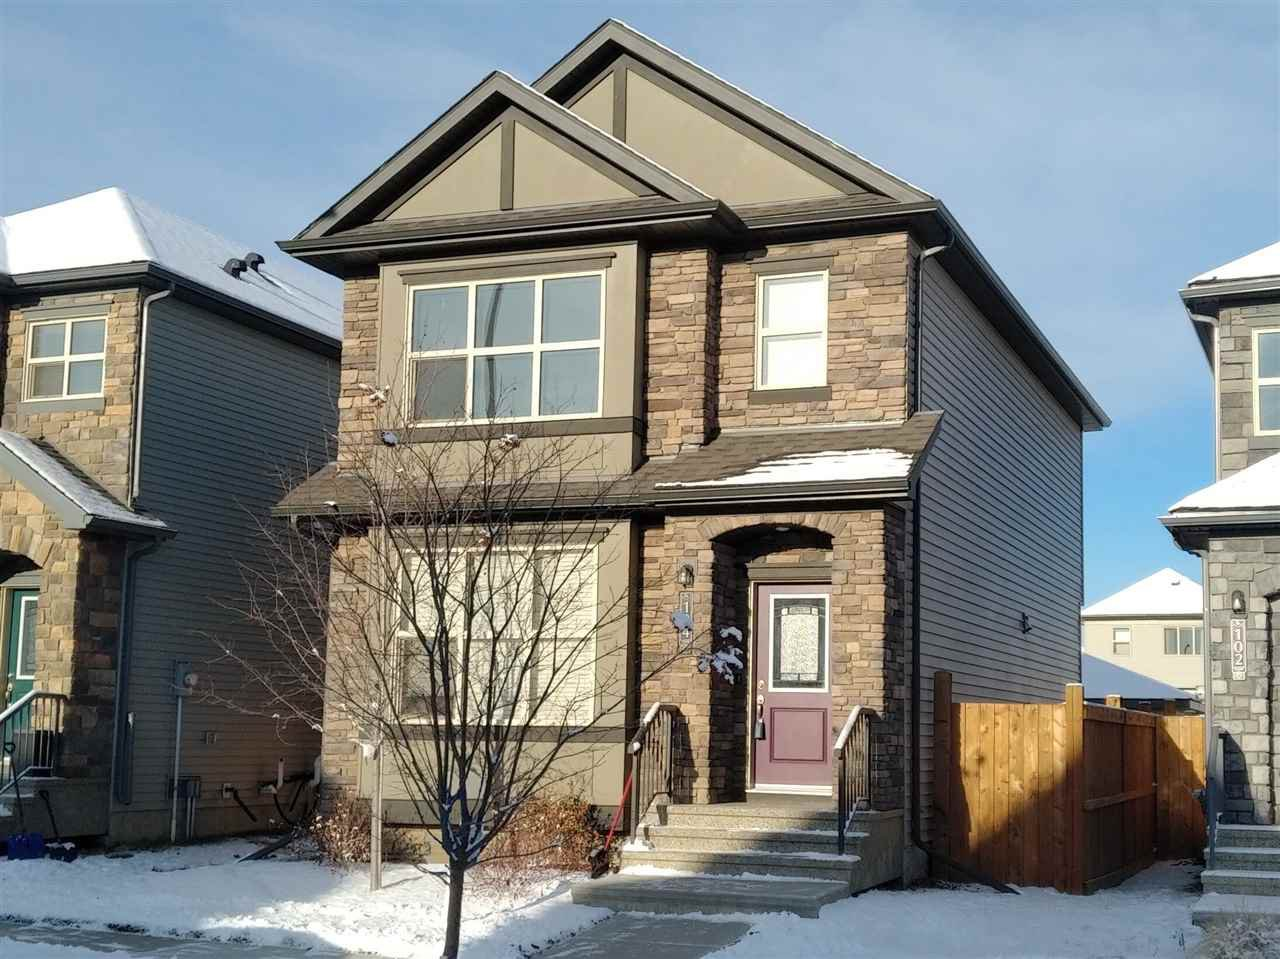 Main Photo: 104 Gilmore Way: Spruce Grove House for sale : MLS®# E4179612